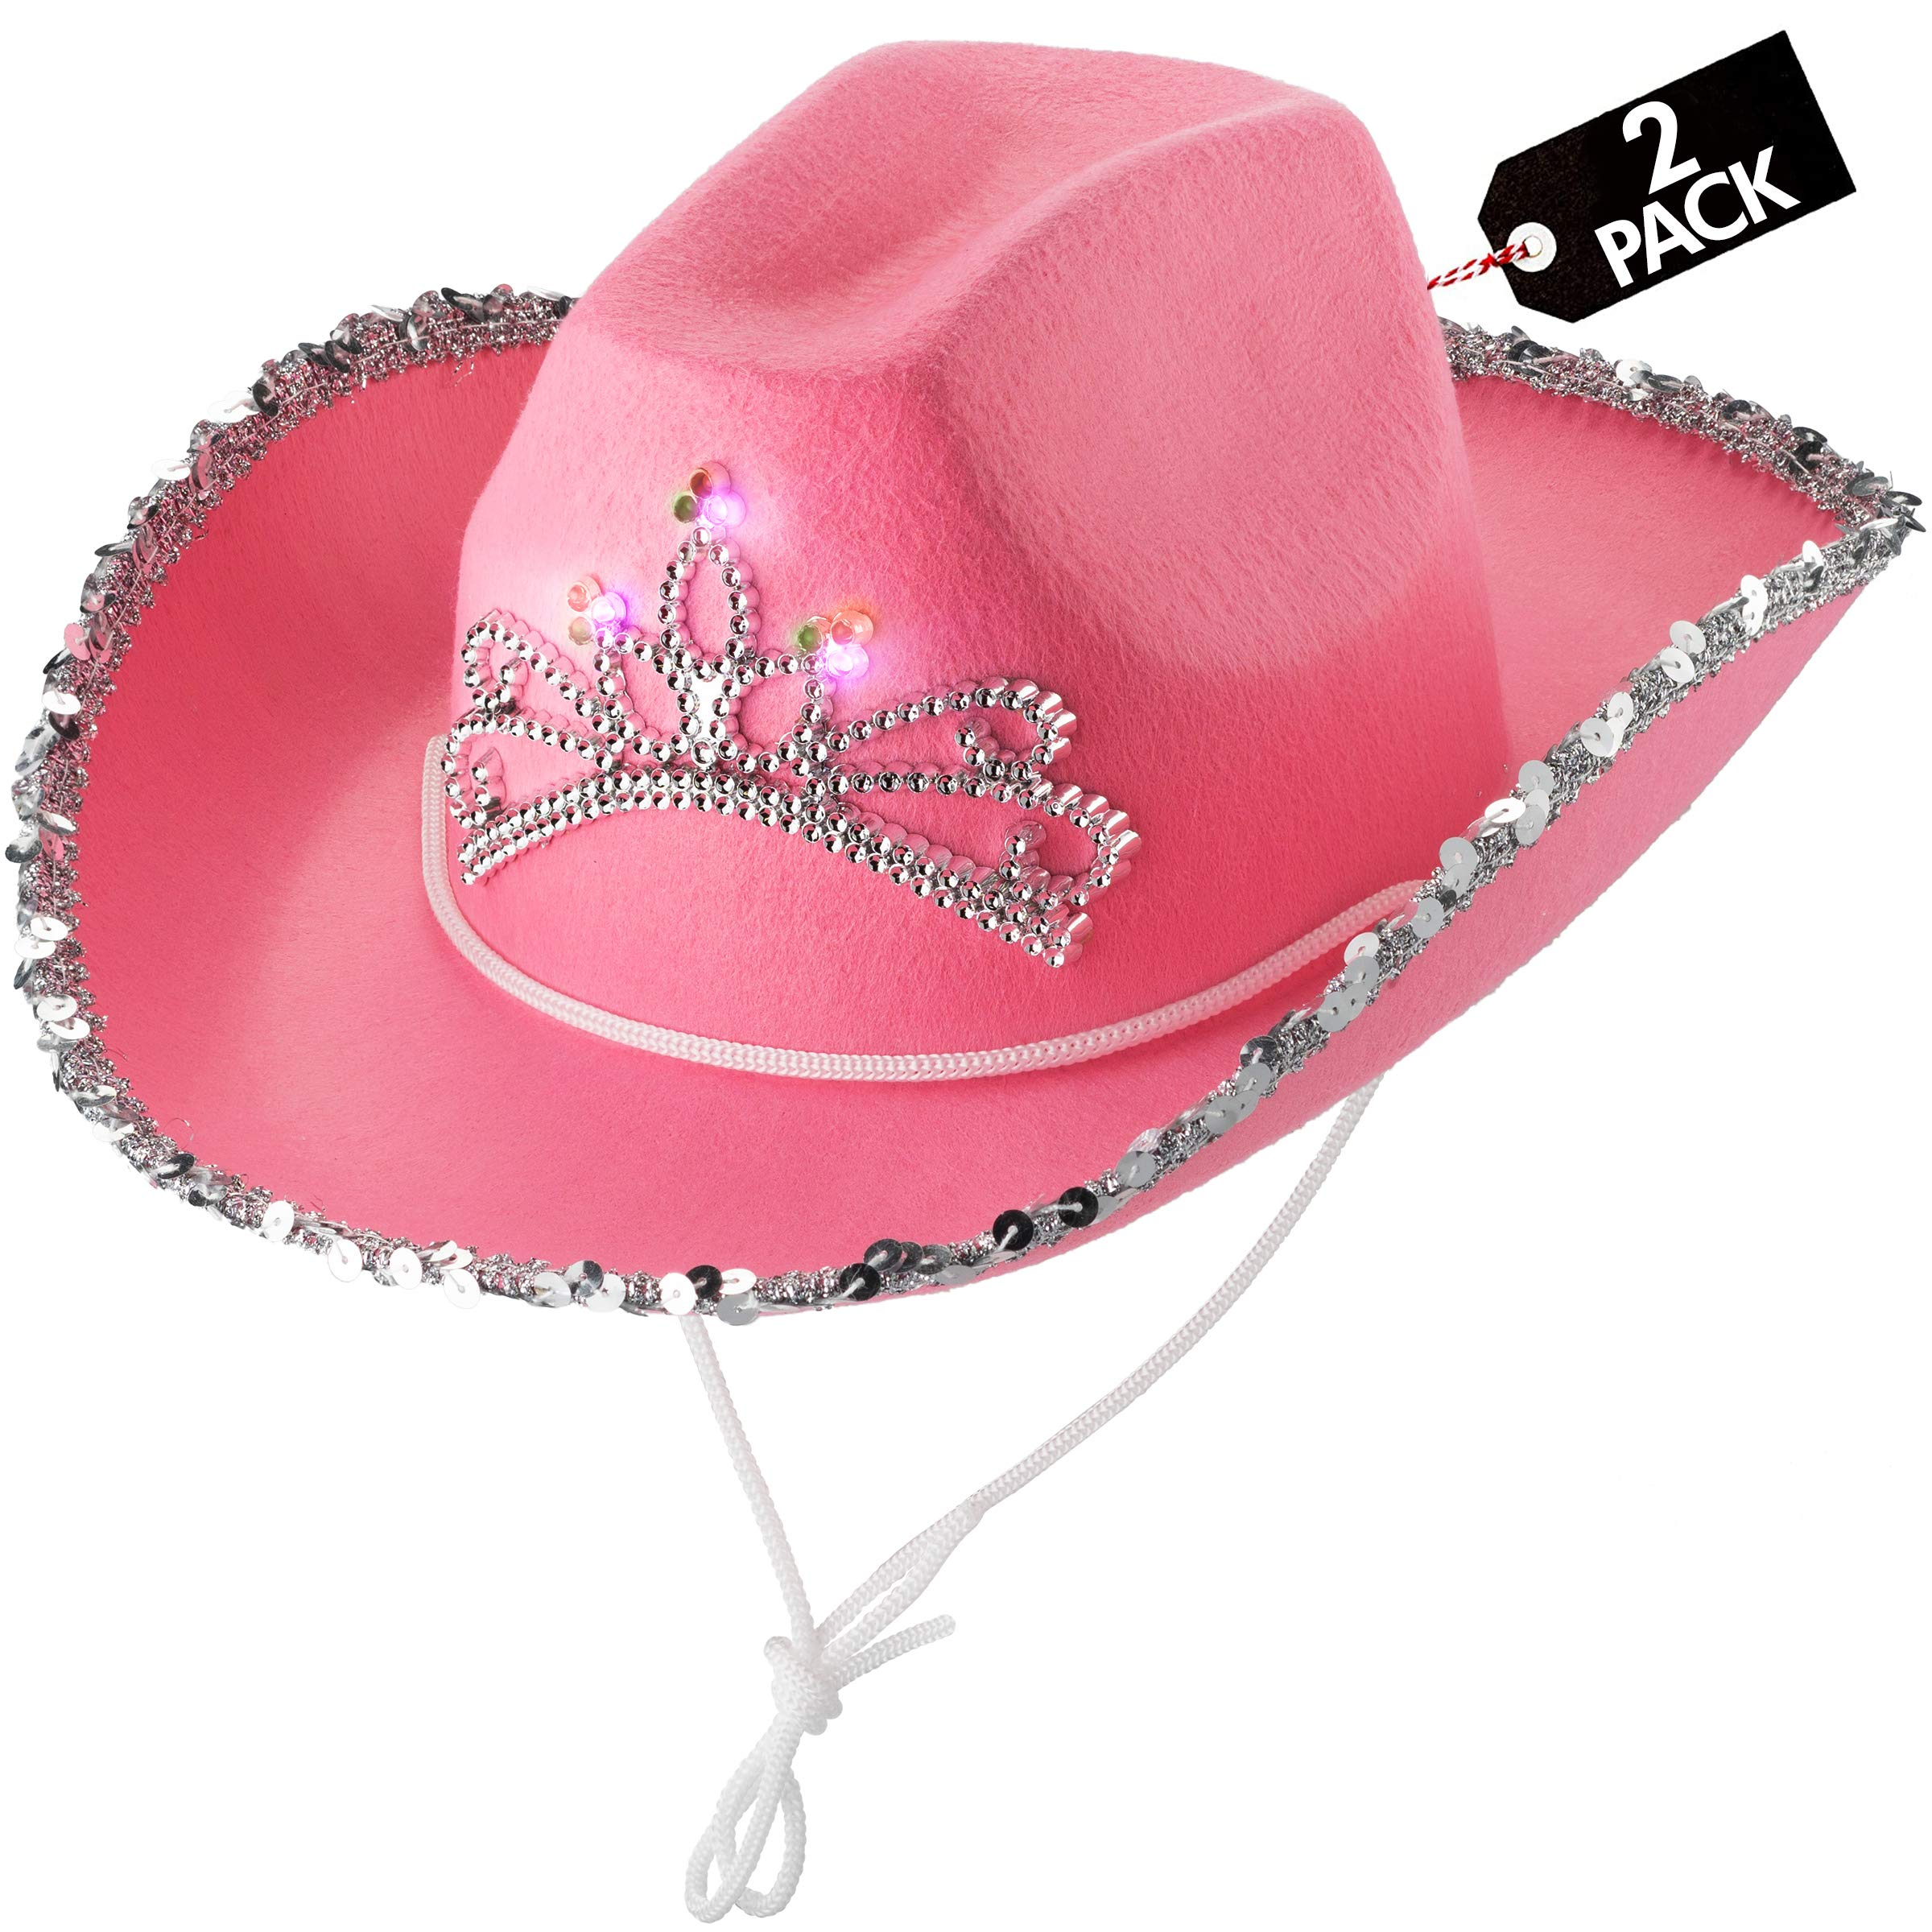 Light-Up Pink Cowgirl Hat - (Pack of 2) Child Blinking Cow Girl Hats with Tiara and Neck Draw String - Felt Cowboy Costume Accessories for Kids Party Hat and Play Dress-Up